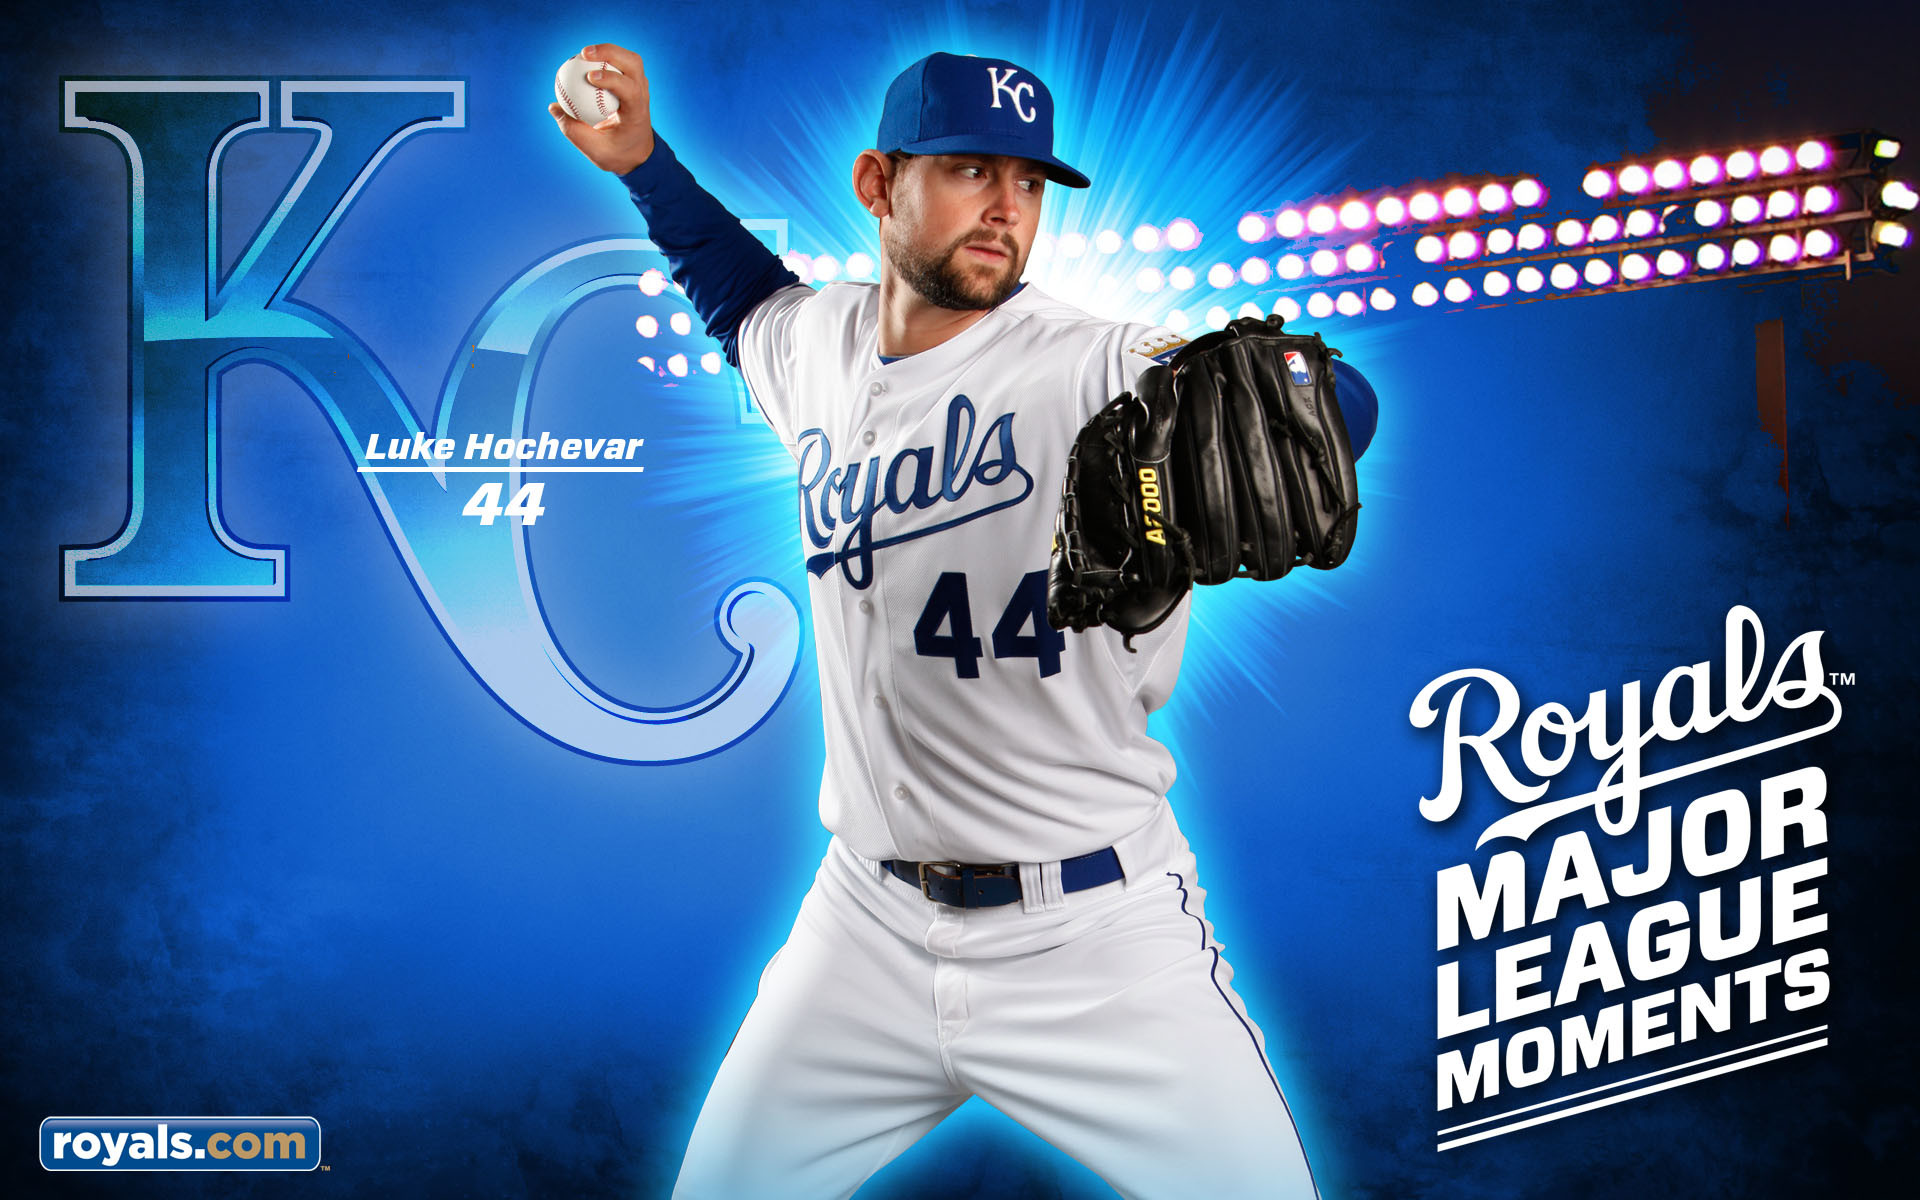 1920x1200 KANSAS CITY ROYALS mlb baseball (19) wallpaper |  | 232211 |  WallpaperUP